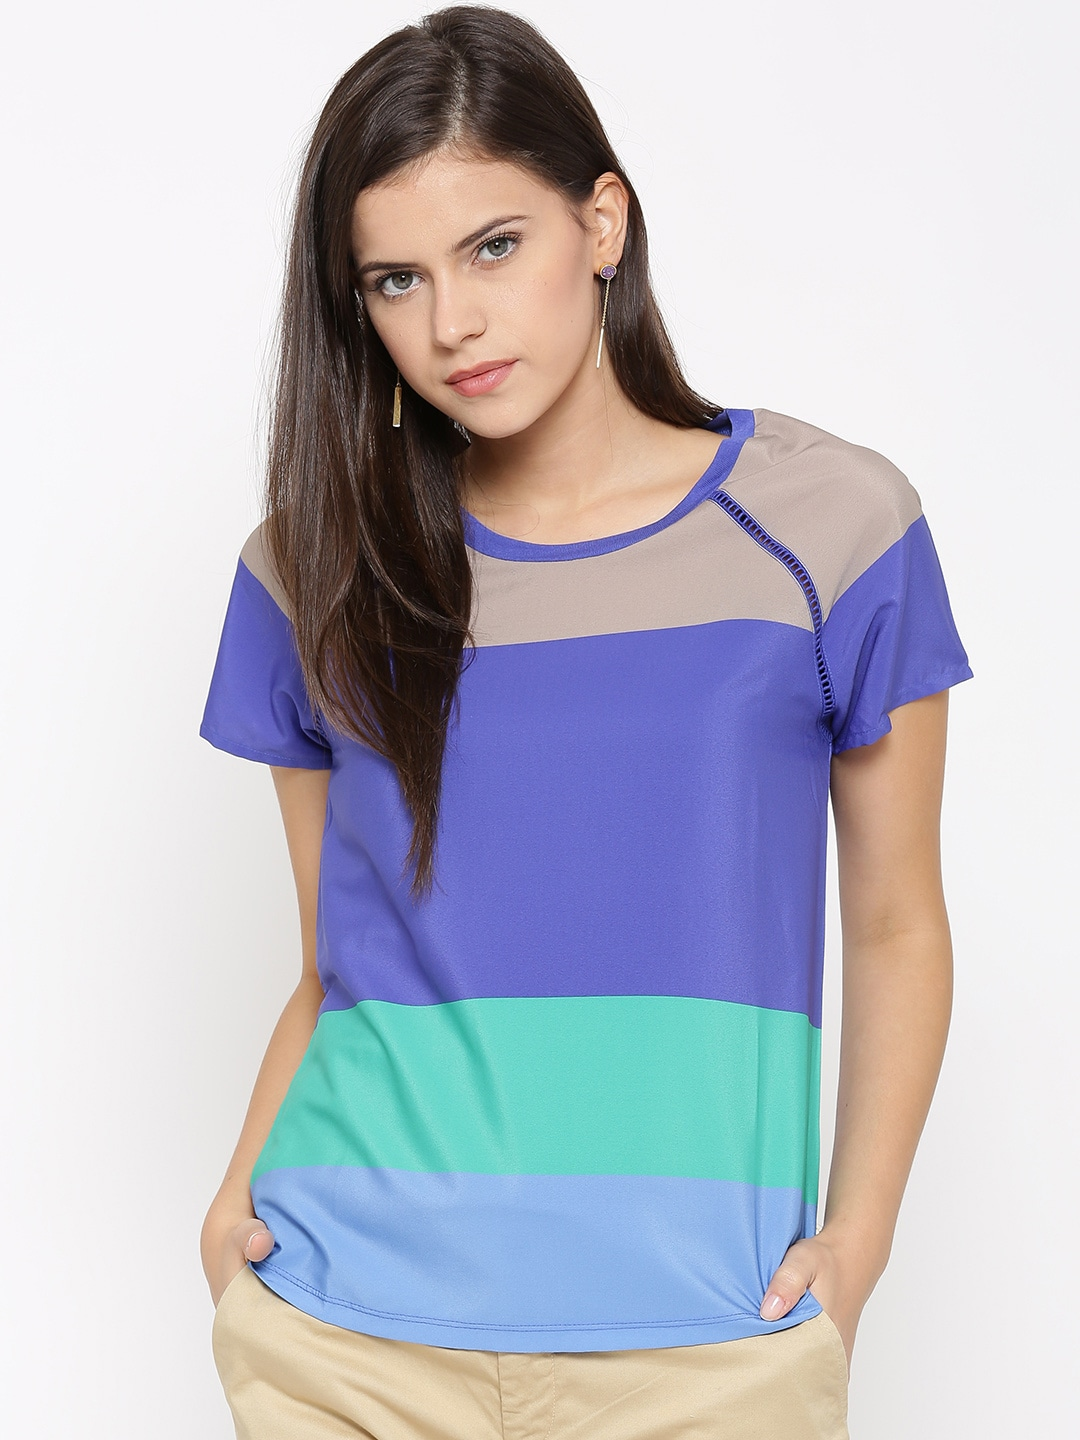 b2269d0fc0 Sisley United Colors Of Benetton Sunglasses Tops - Buy Sisley United Colors  Of Benetton Sunglasses Tops online in India